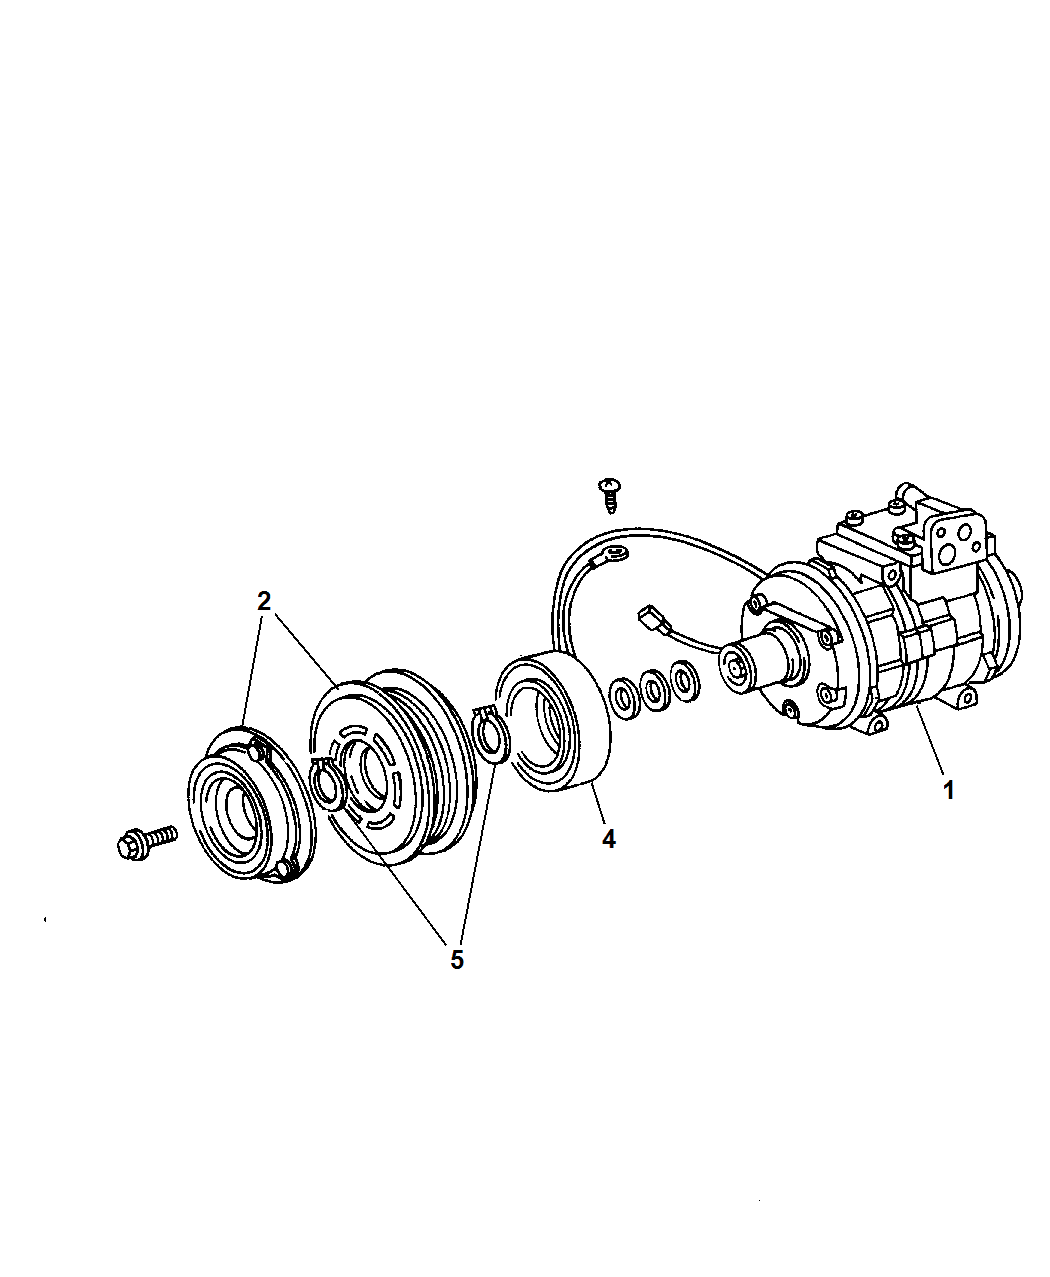 [NN_2357] 2006 Jeep Commander Ac Diagram Schematic Wiring